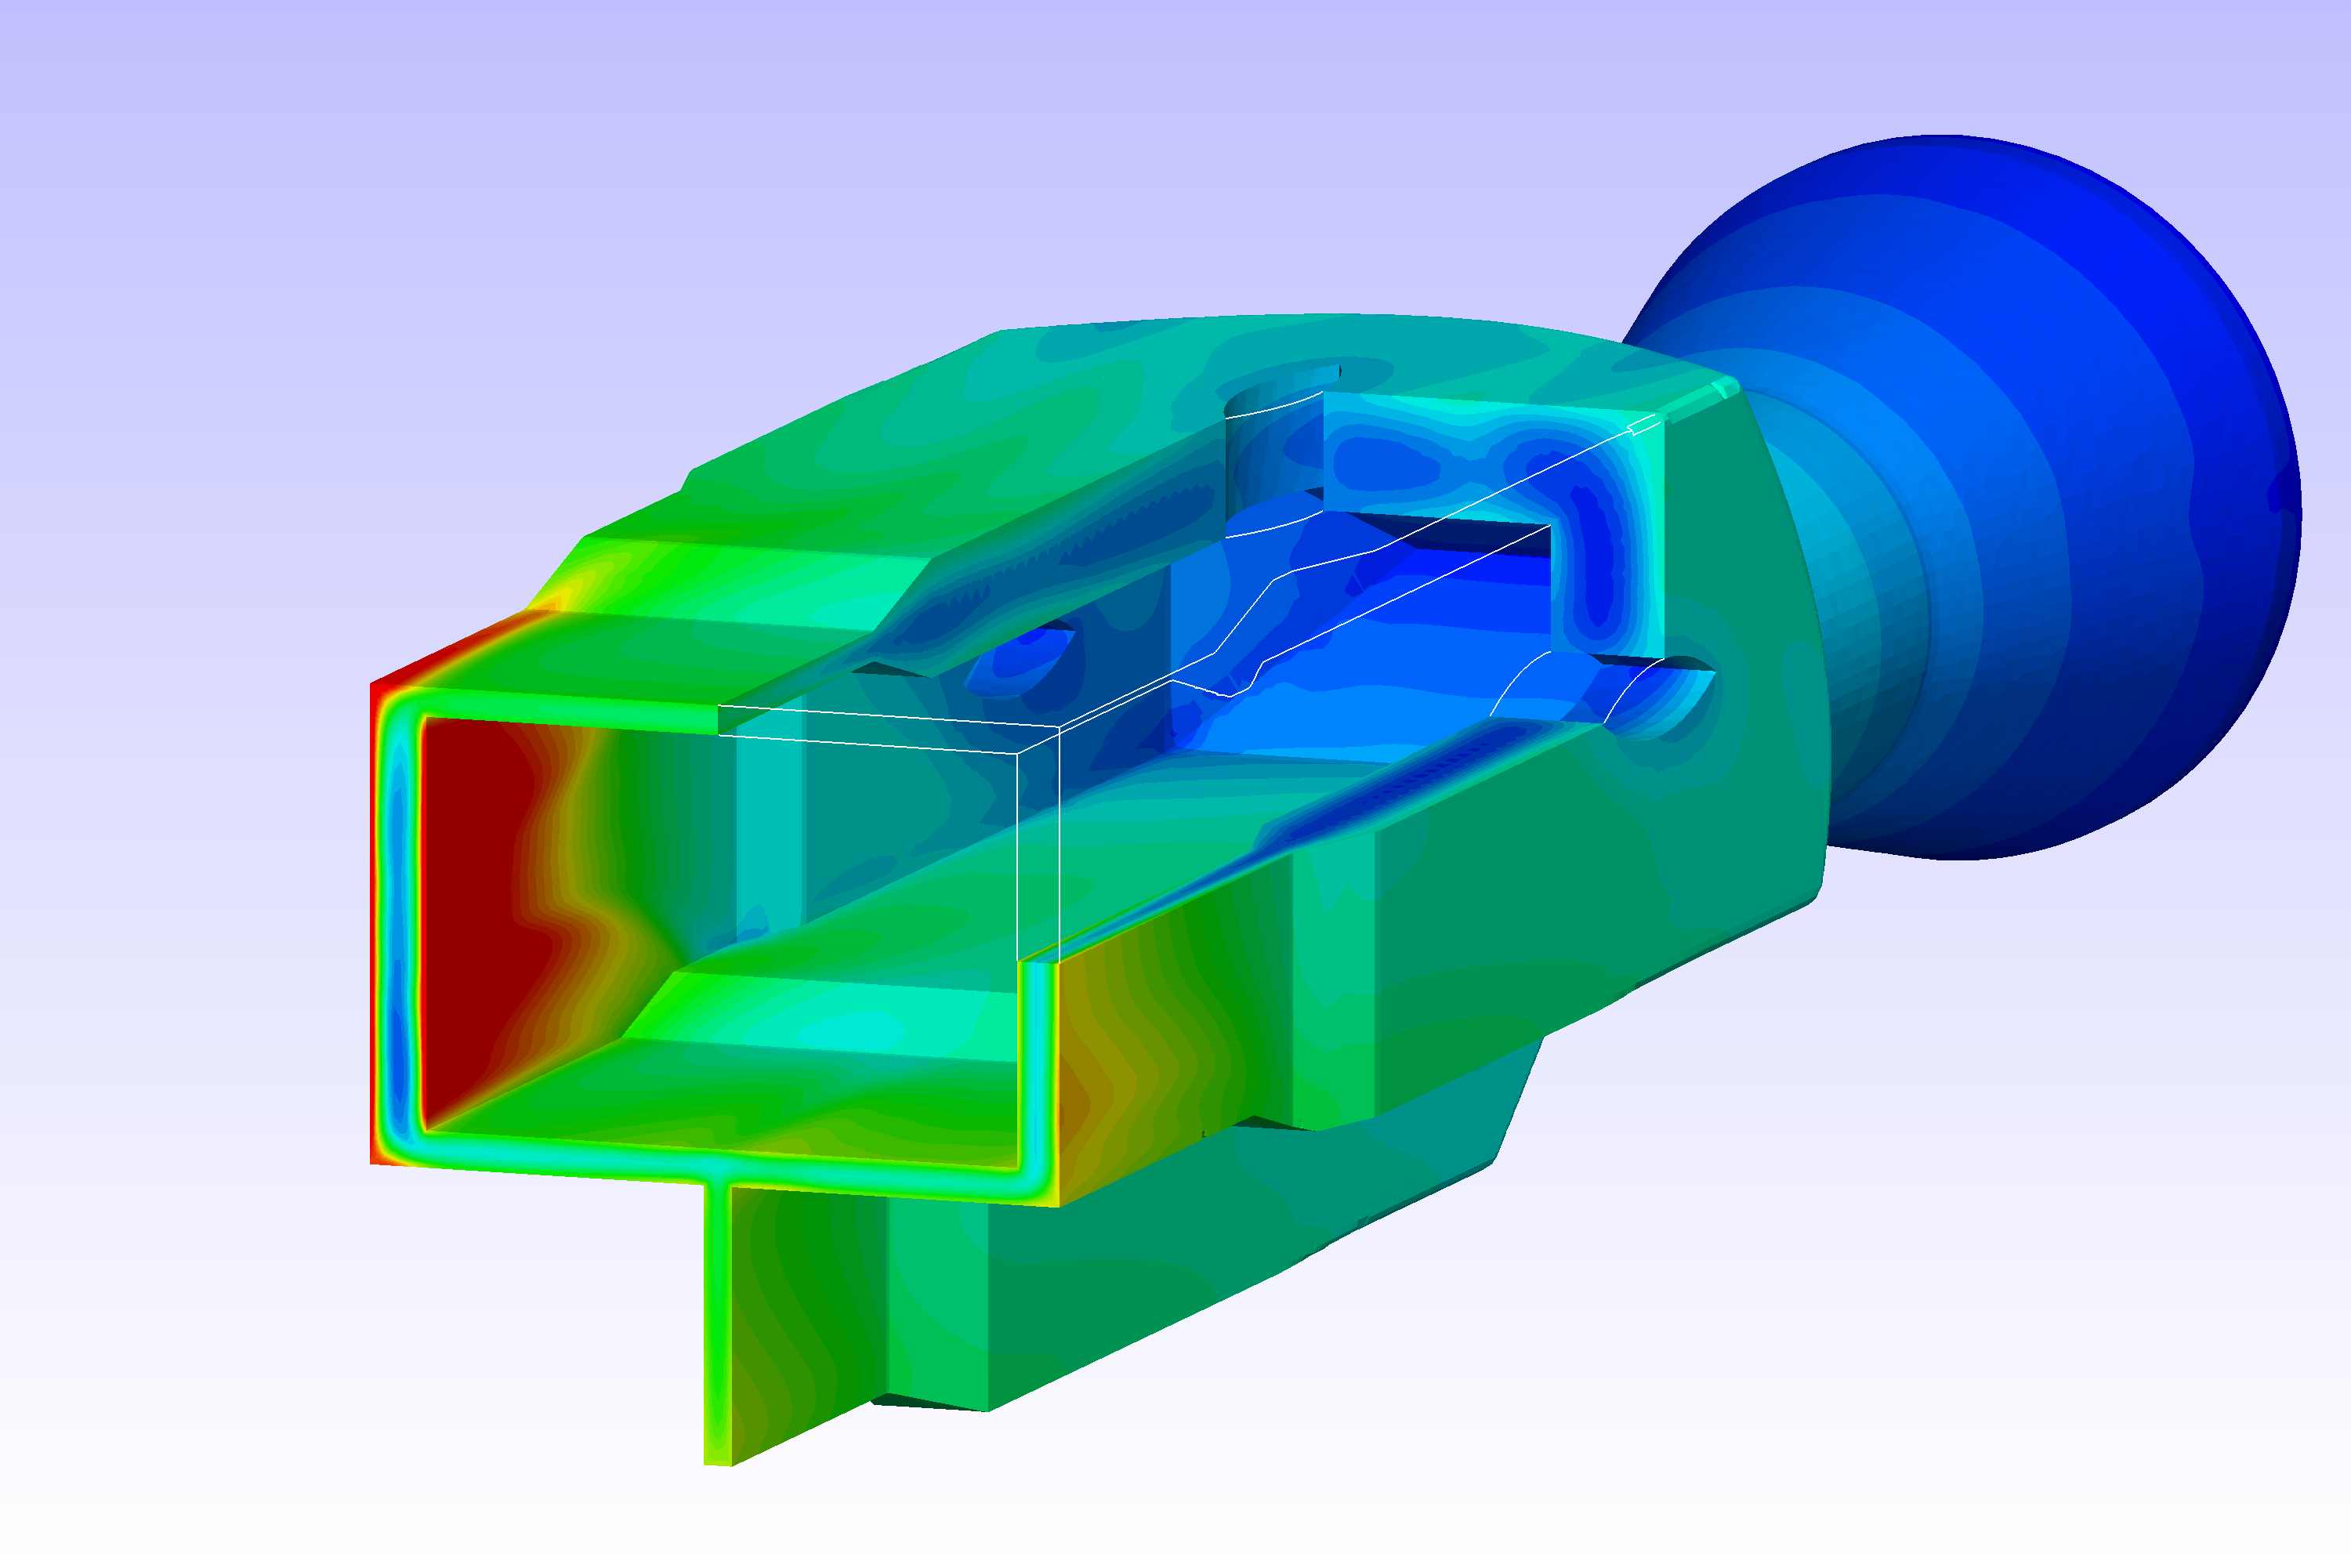 Viscous heating solver for OpenFOAM